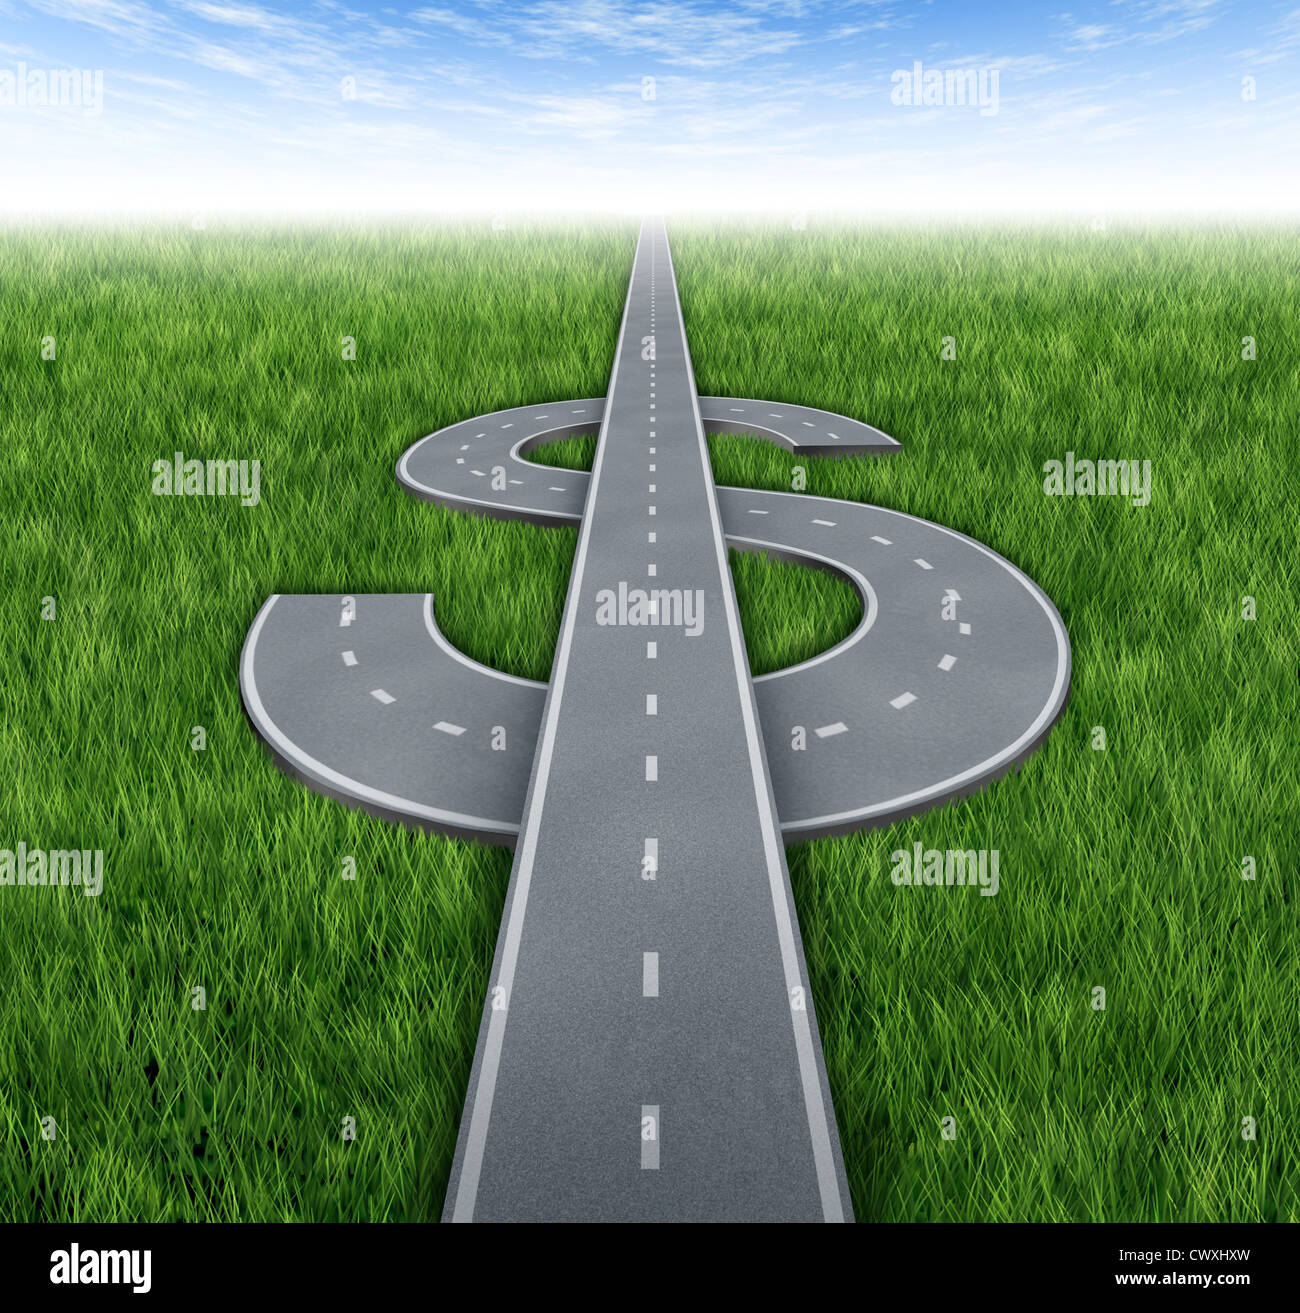 Road to riches as awinning financial concept of making money and acheiving business success with roads and highways - Stock Image